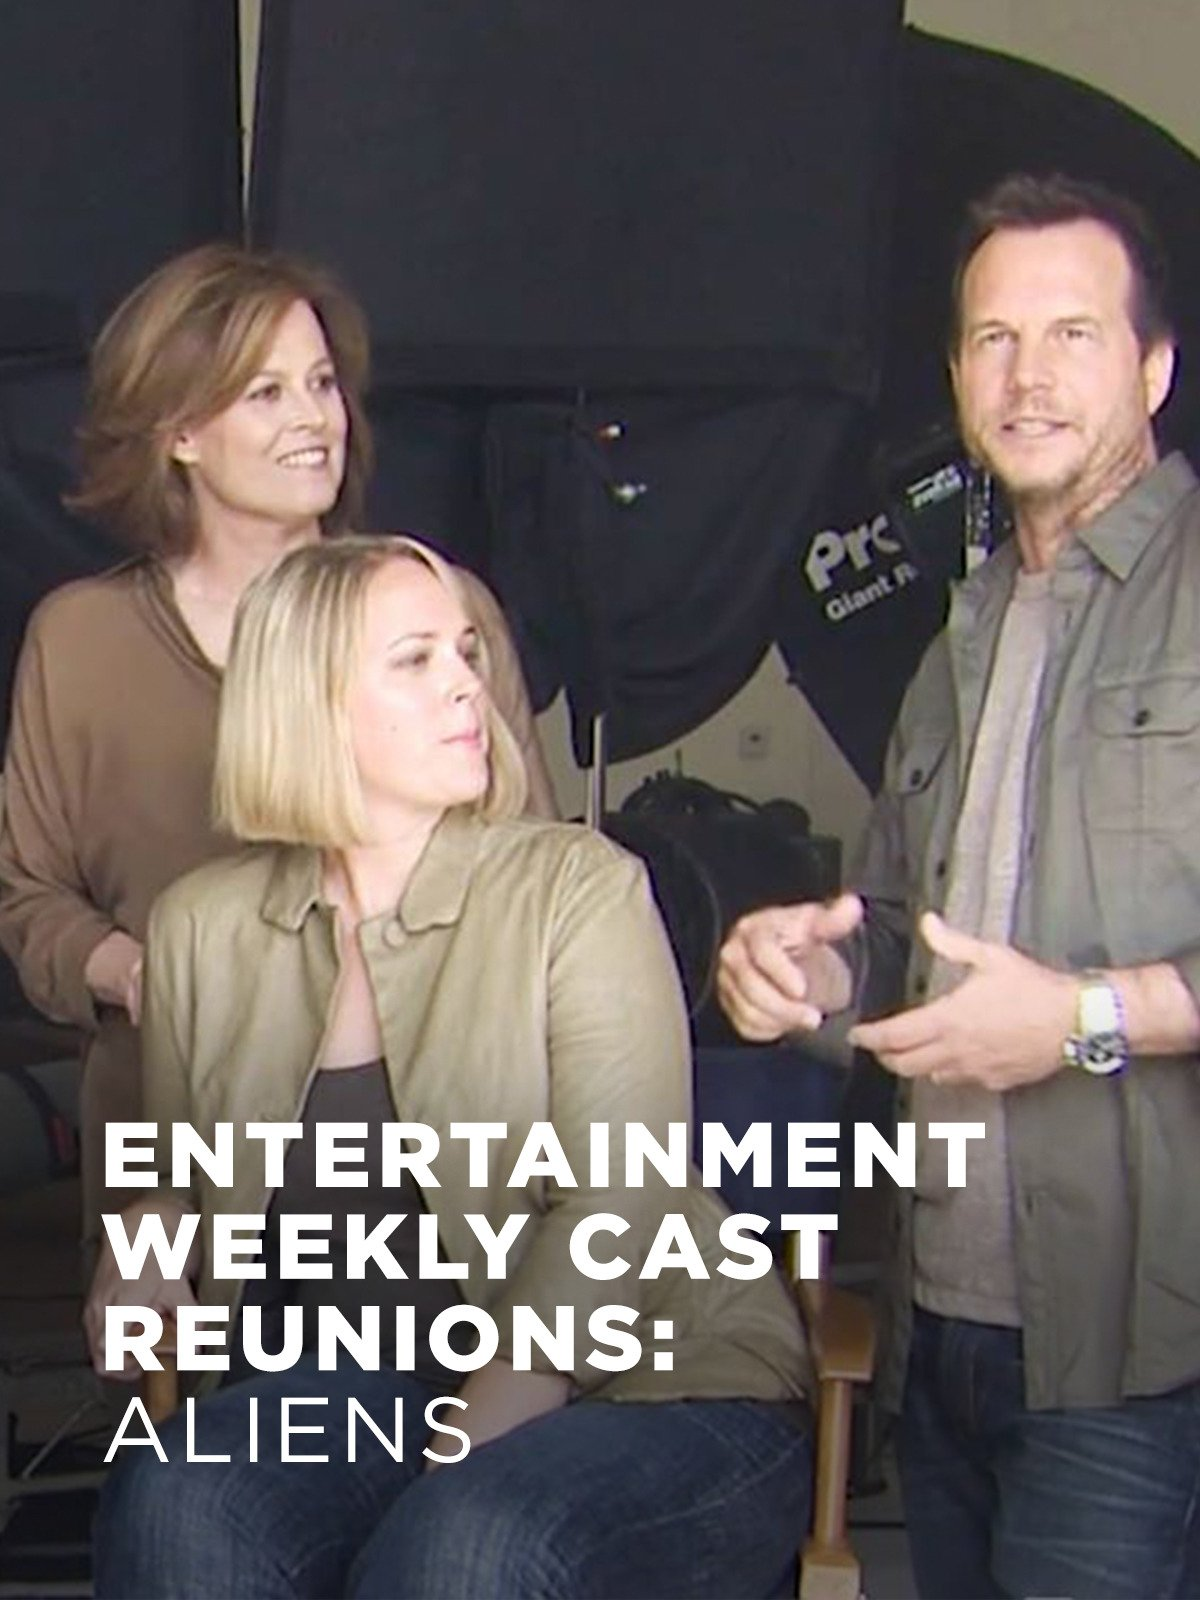 Entertainment Weekly Cast Reunions: Aliens